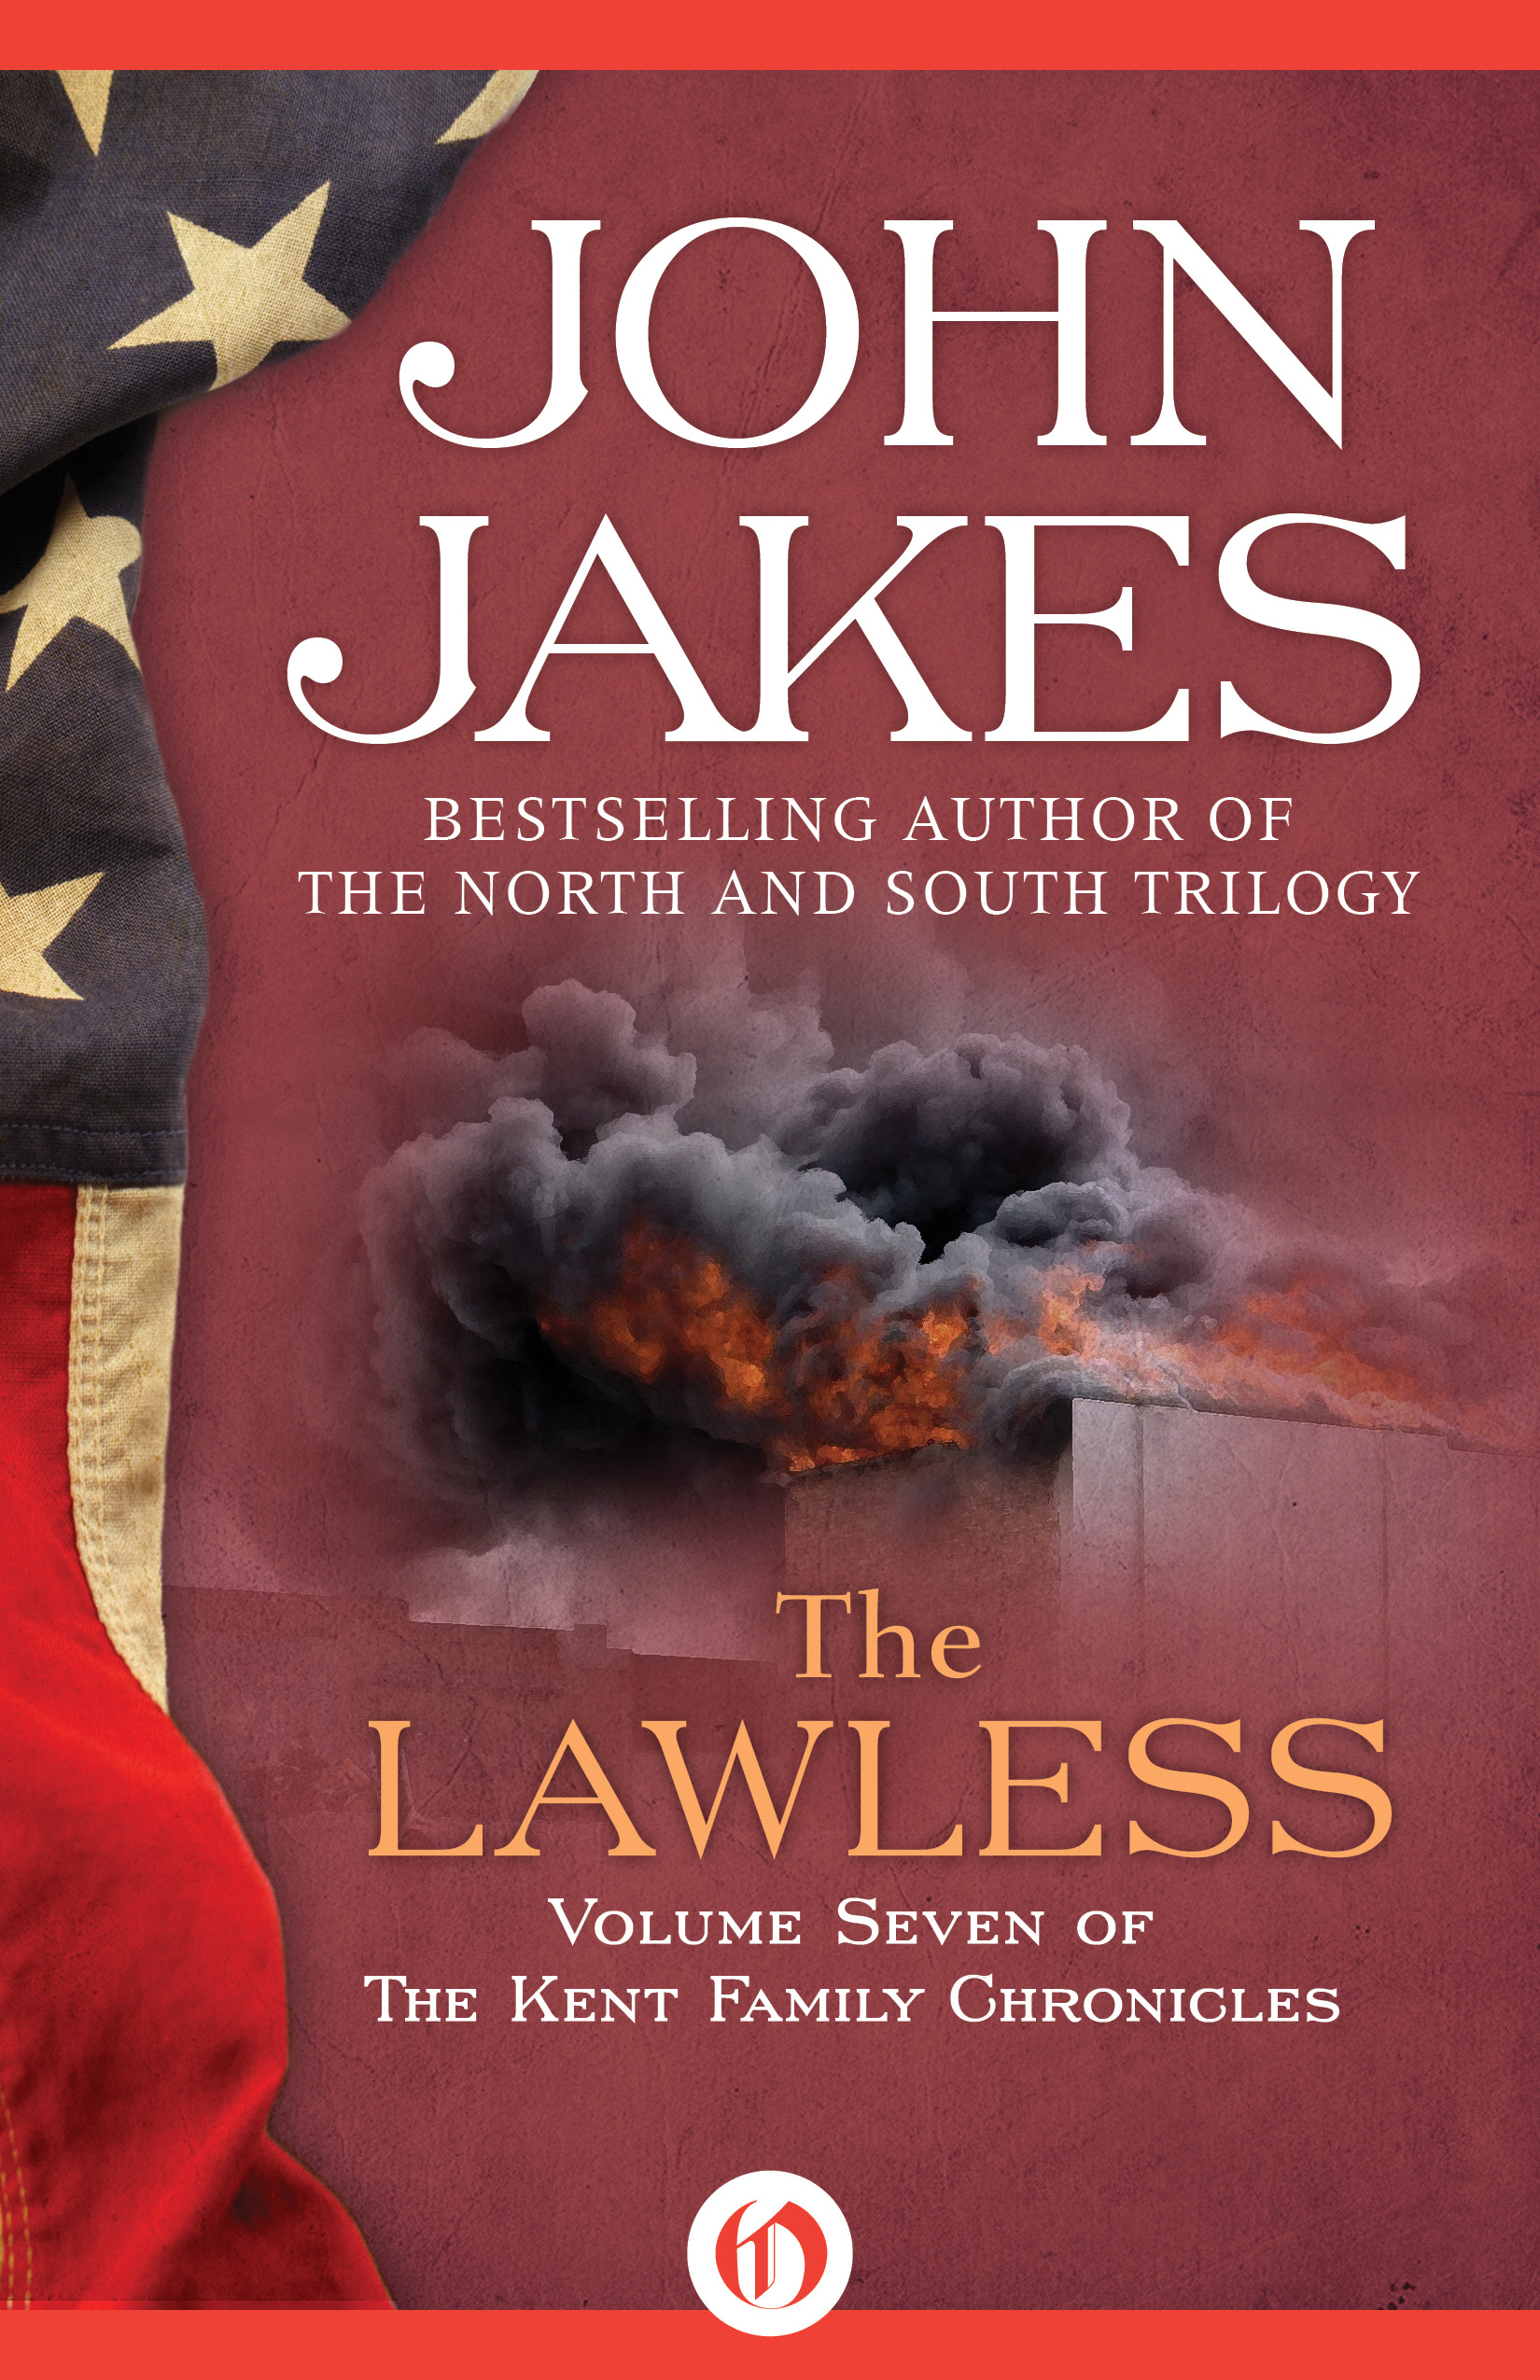 The Lawless By: John Jakes